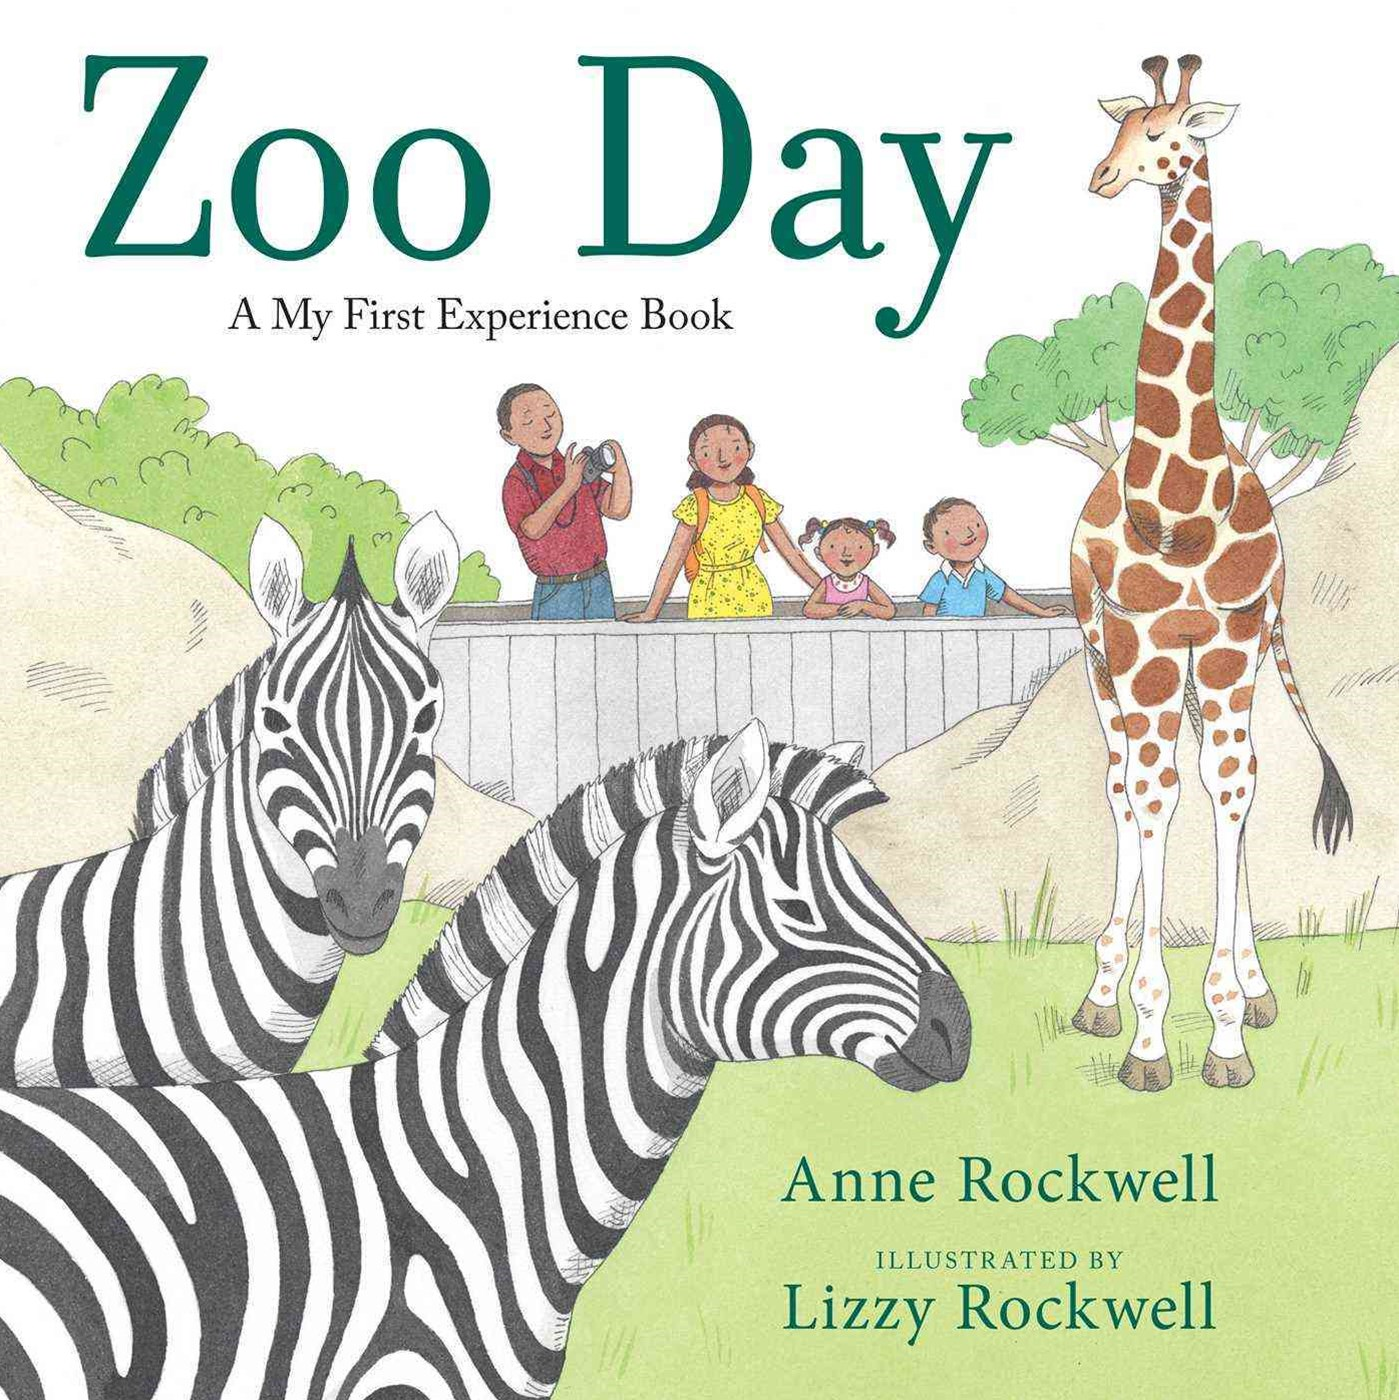 My First Experience: Zoo Day